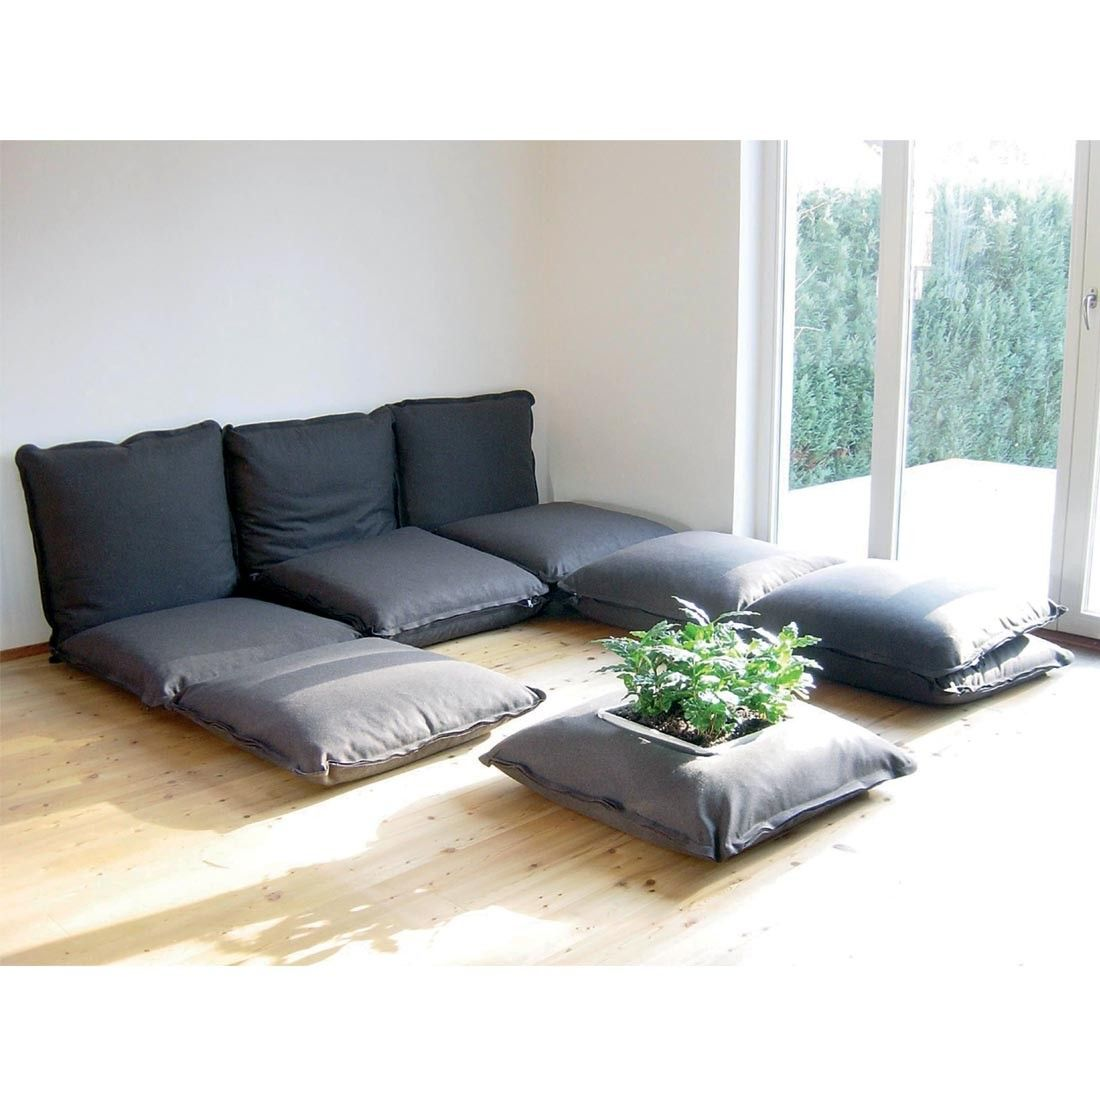 Big Cushion Sofa Zipzip Modular Cushions Floor Cushions Home